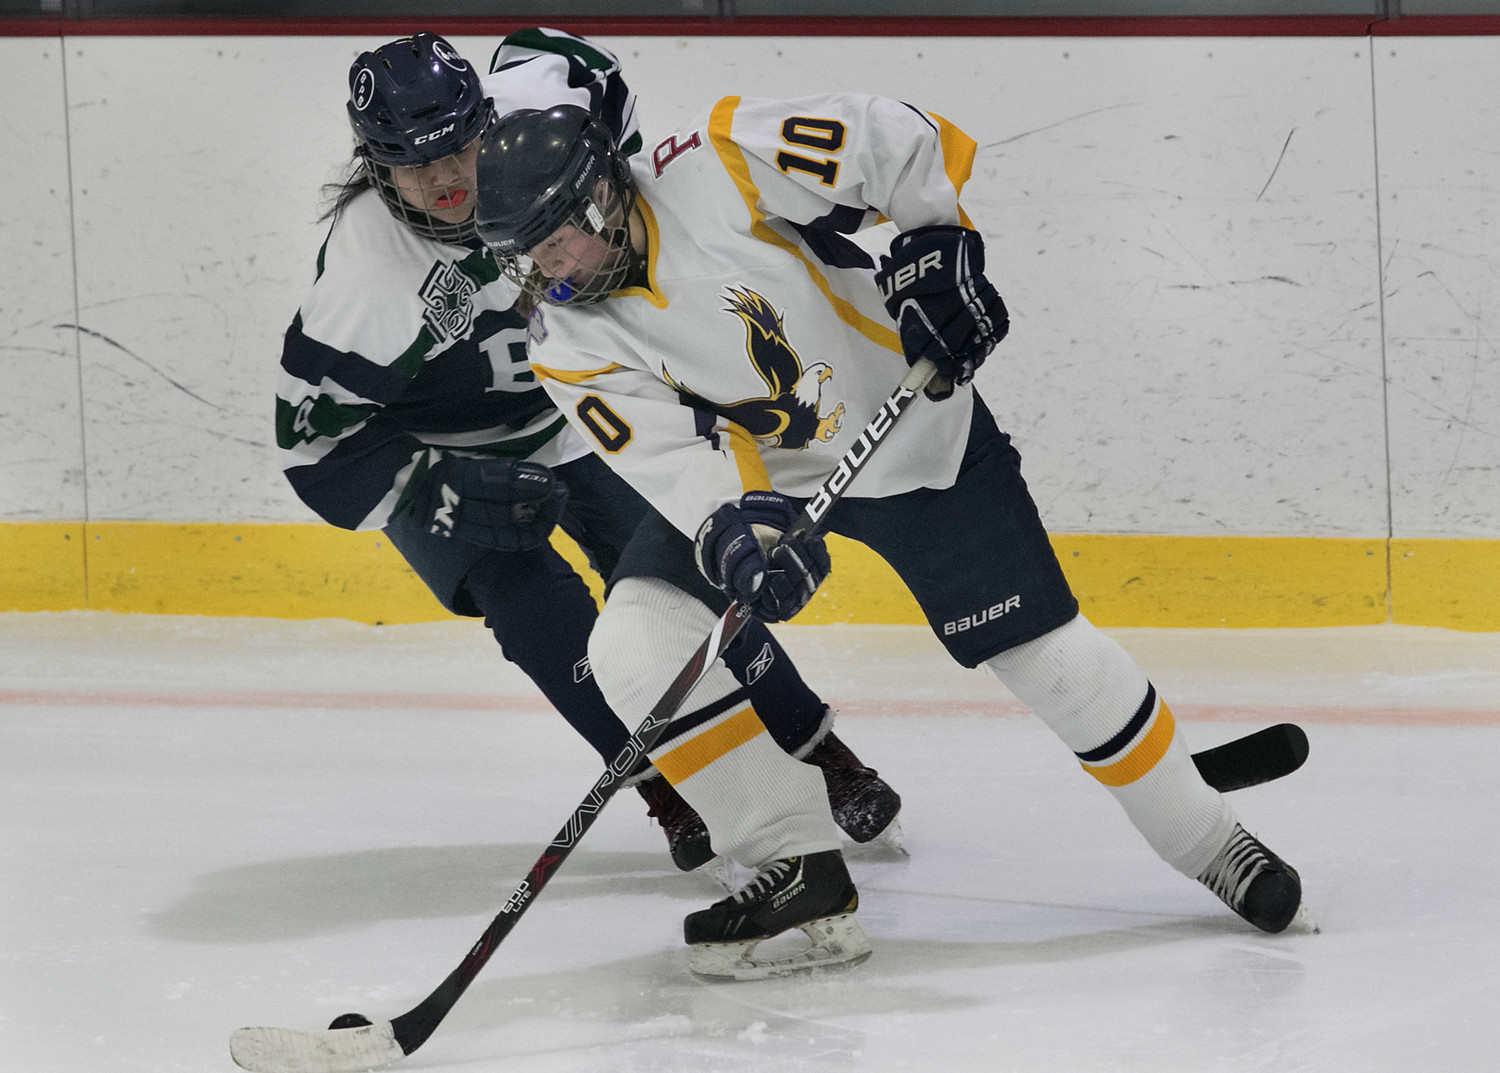 East Bay defenseman Madelyn Cox skates the puck into the offensive zone. She scored a goal and assisted on another during the game.